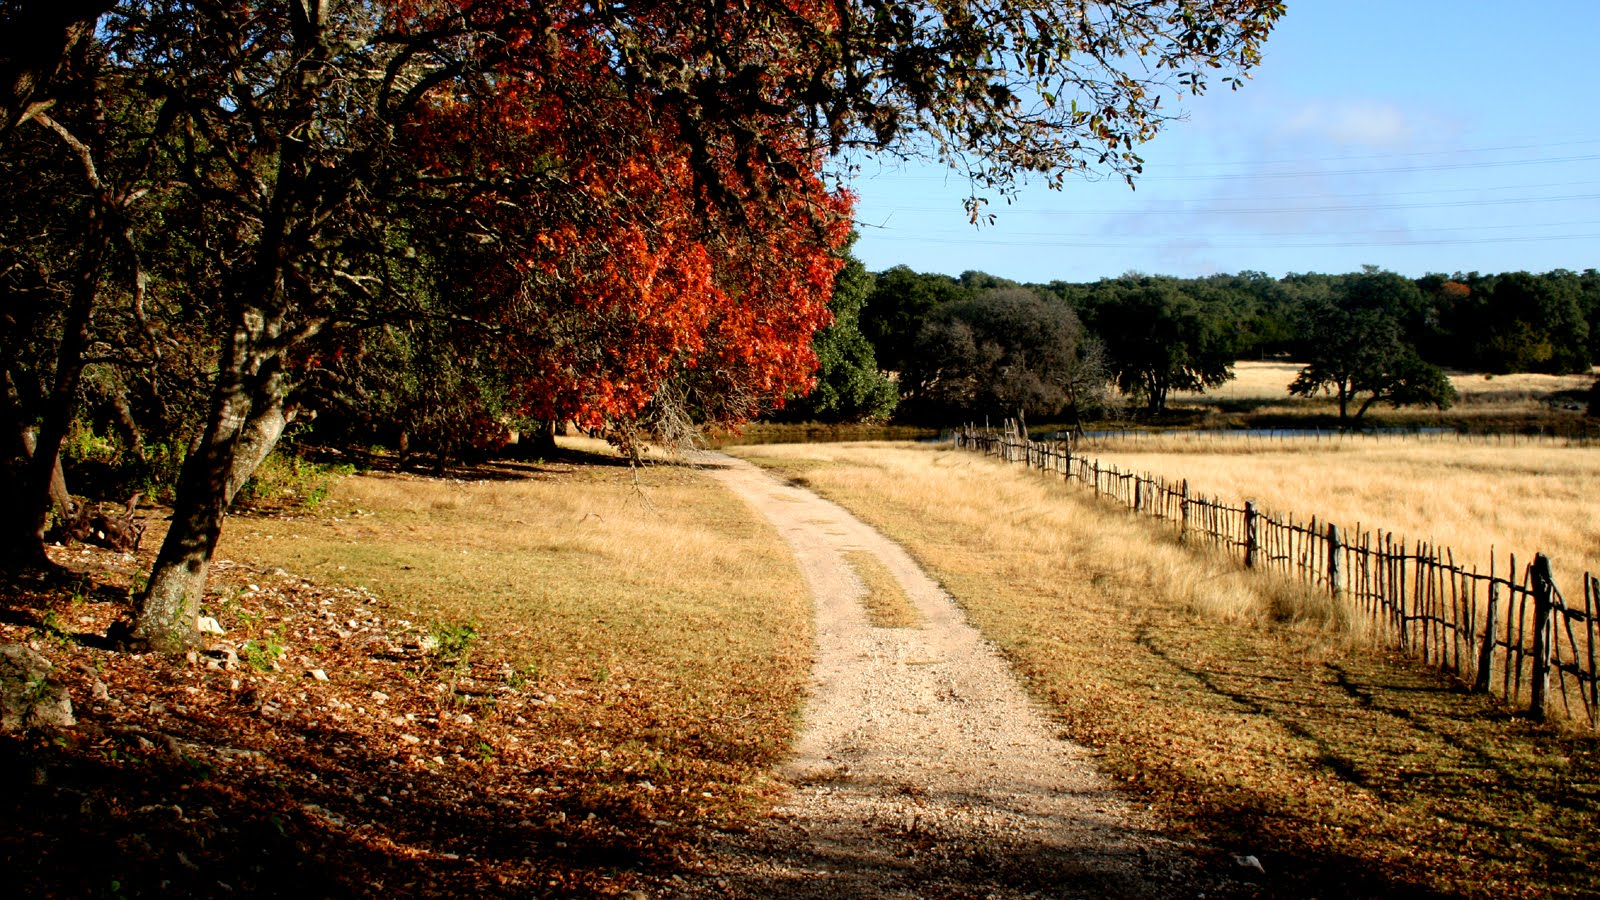 Film SA Fall in the Texas Hill Country